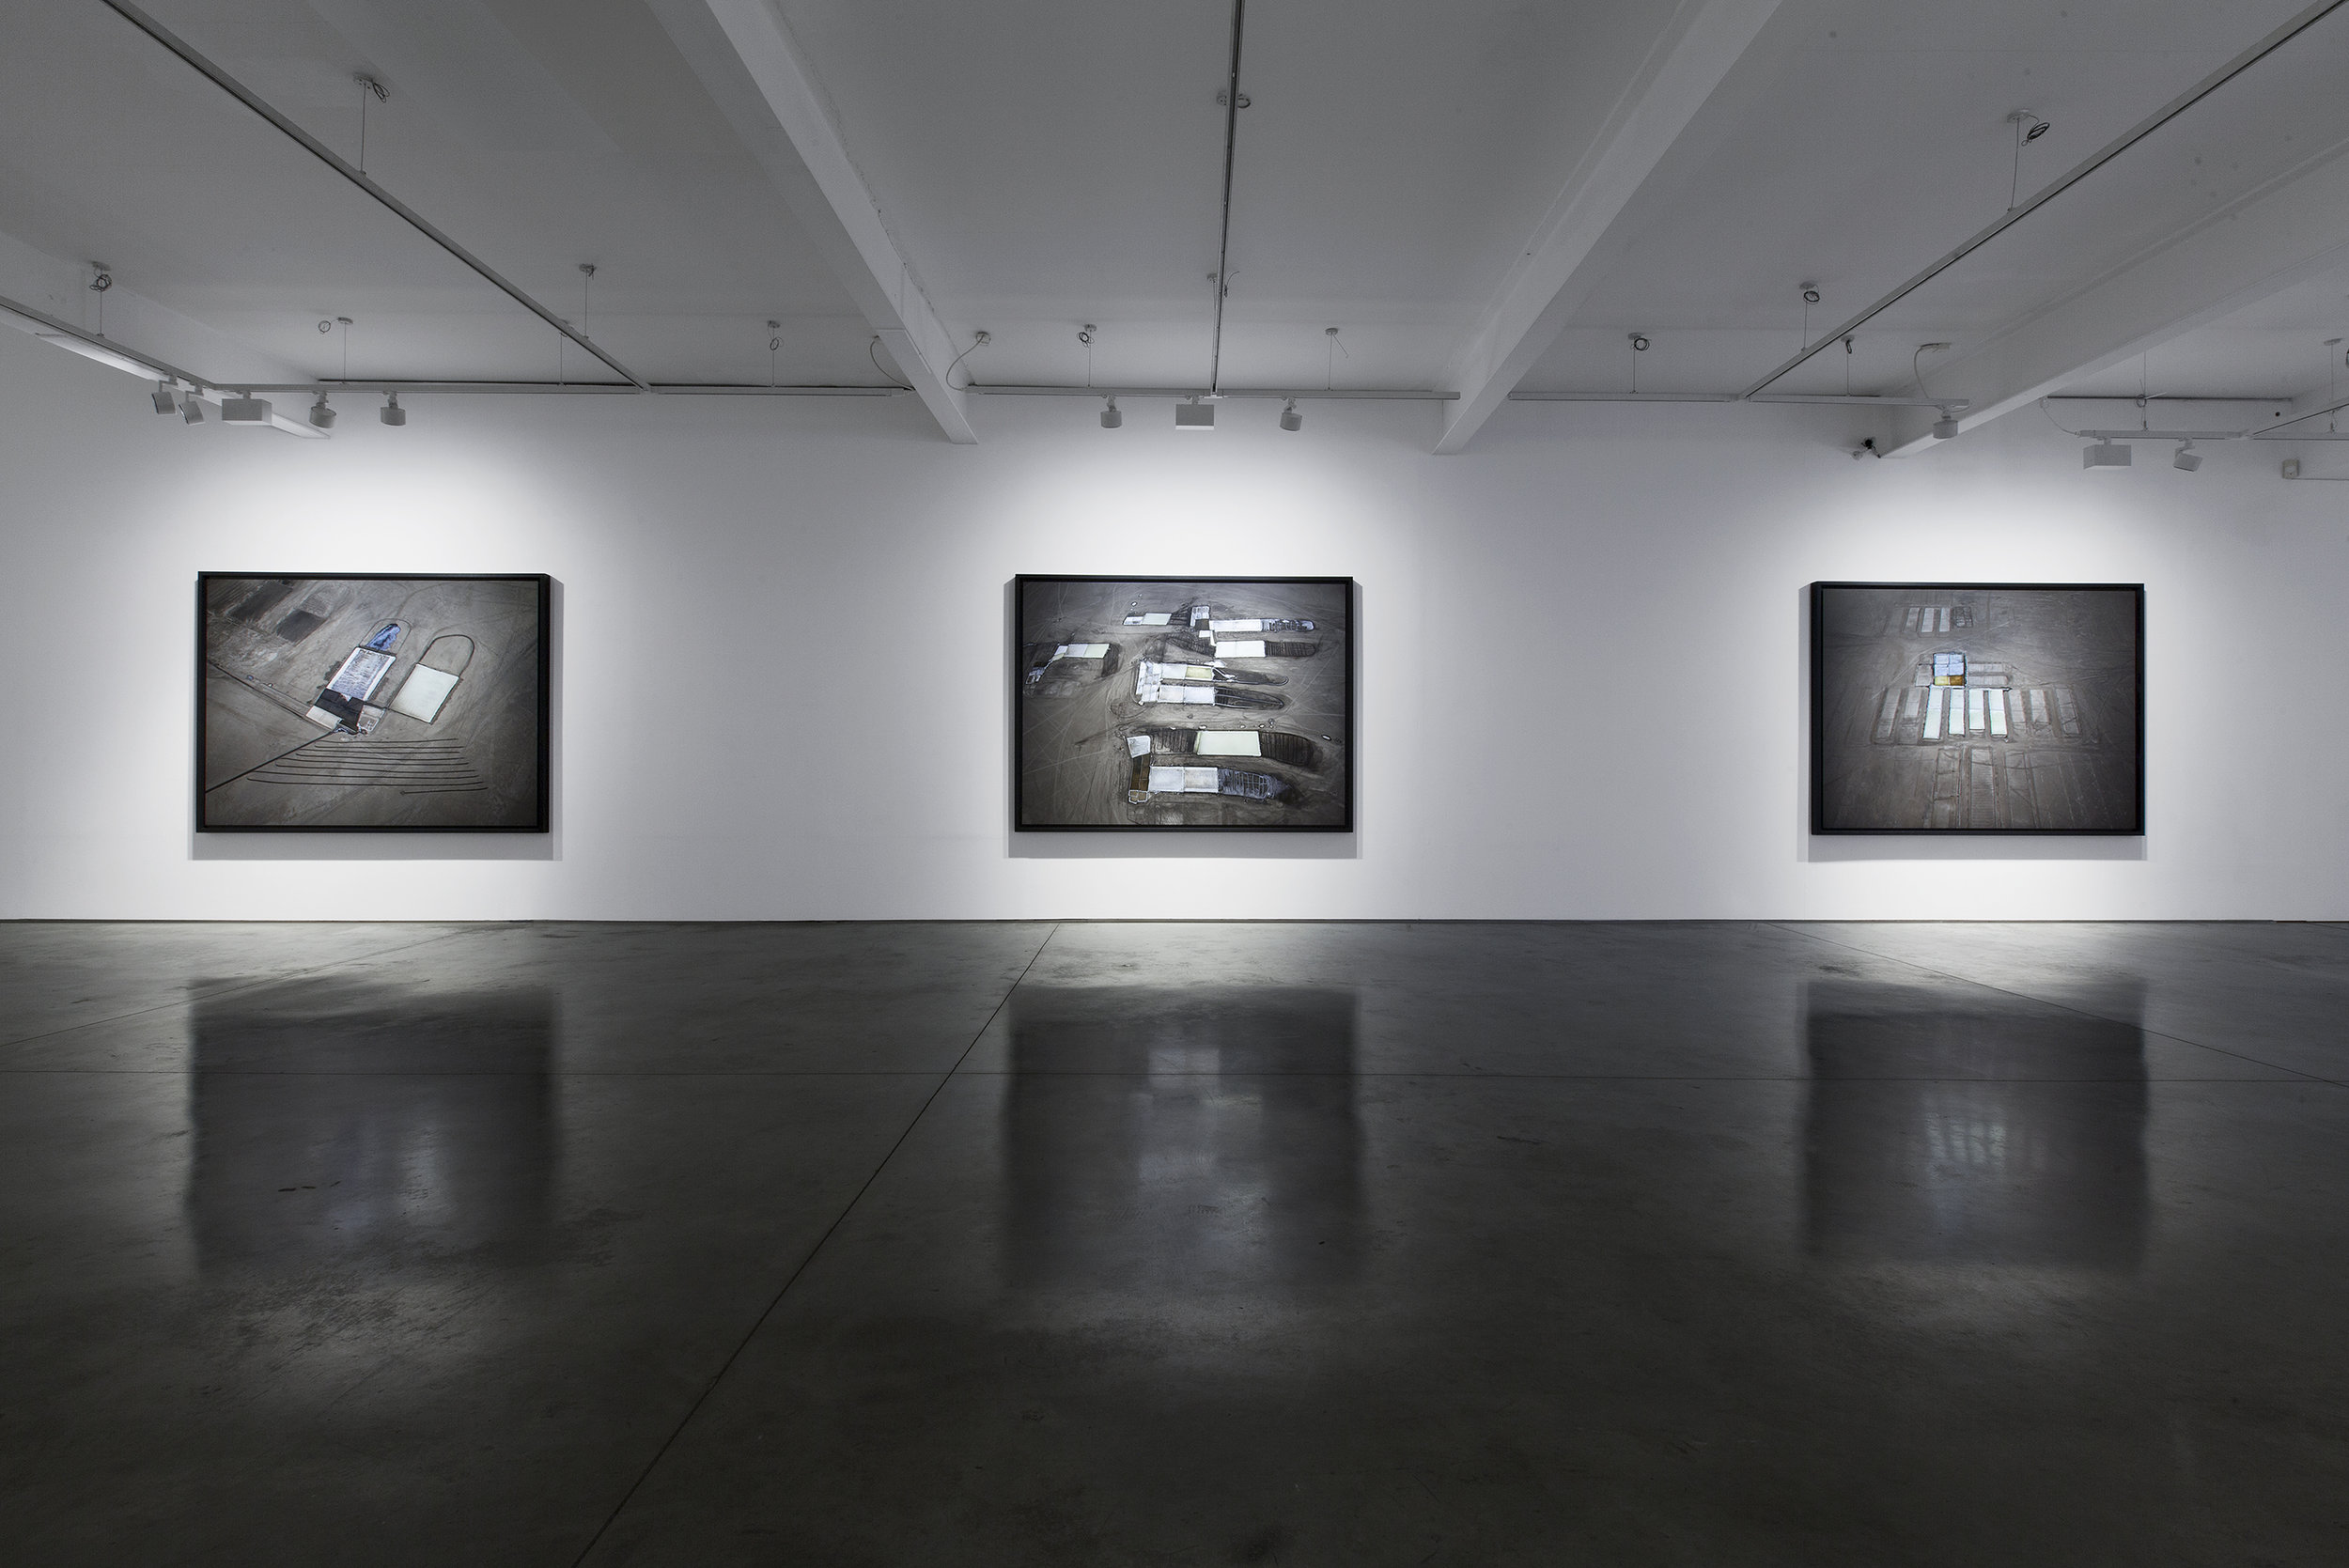 Edward Burtynsky, Salt Pans, Installation view, Flowers Gallery 2016